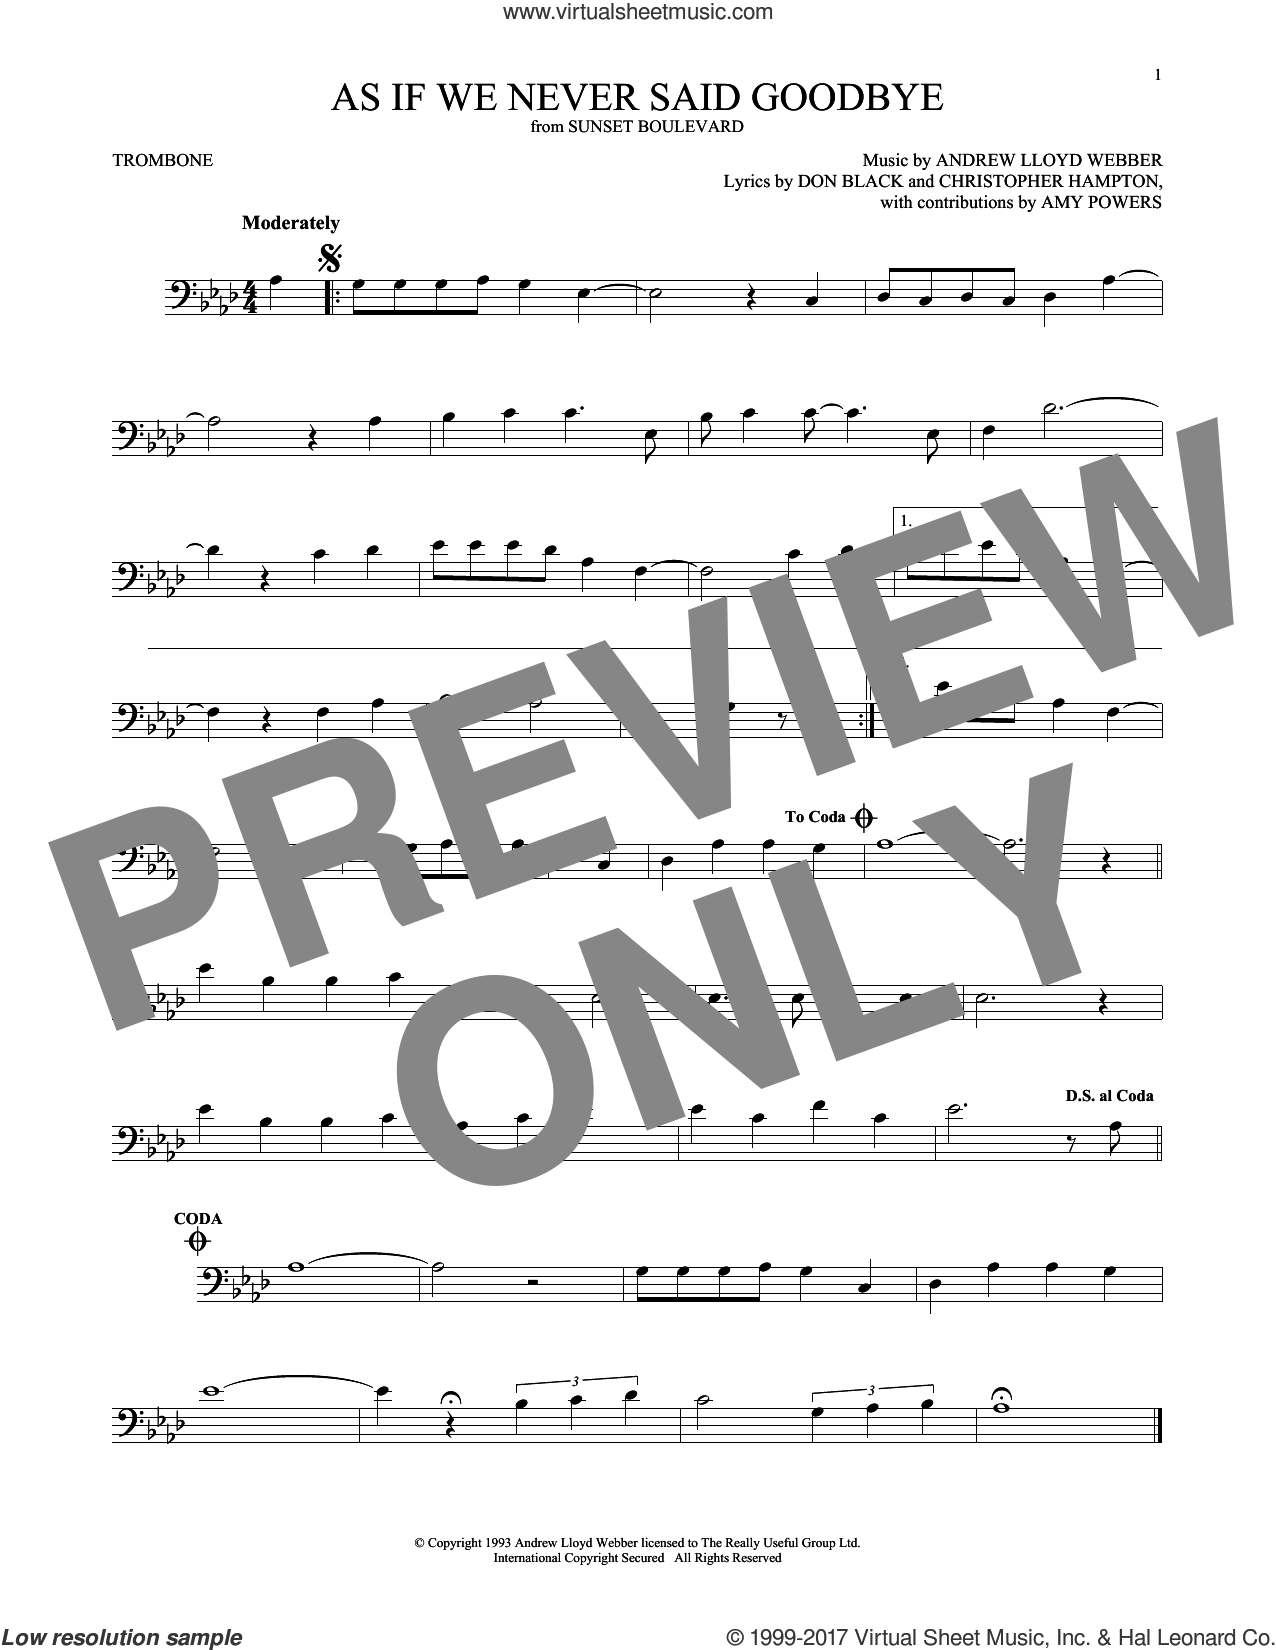 As If We Never Said Goodbye sheet music for trombone solo by Andrew Lloyd Webber, Christopher Hampton and Don Black, intermediate skill level